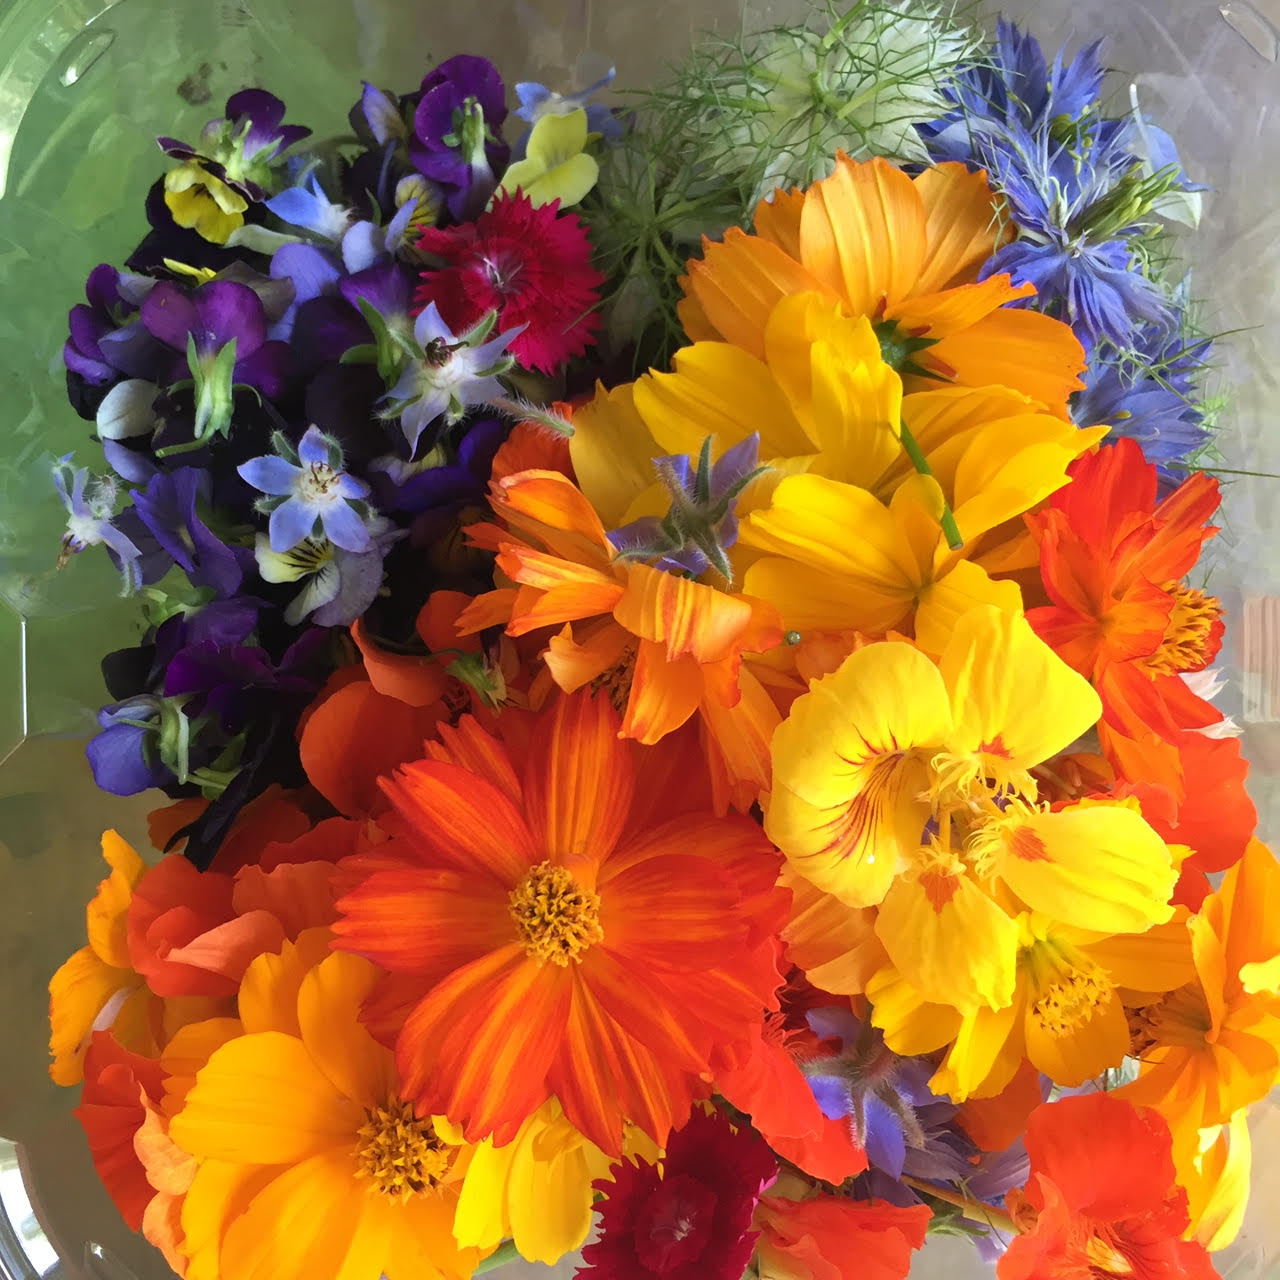 Edible Flowers mix.jpg